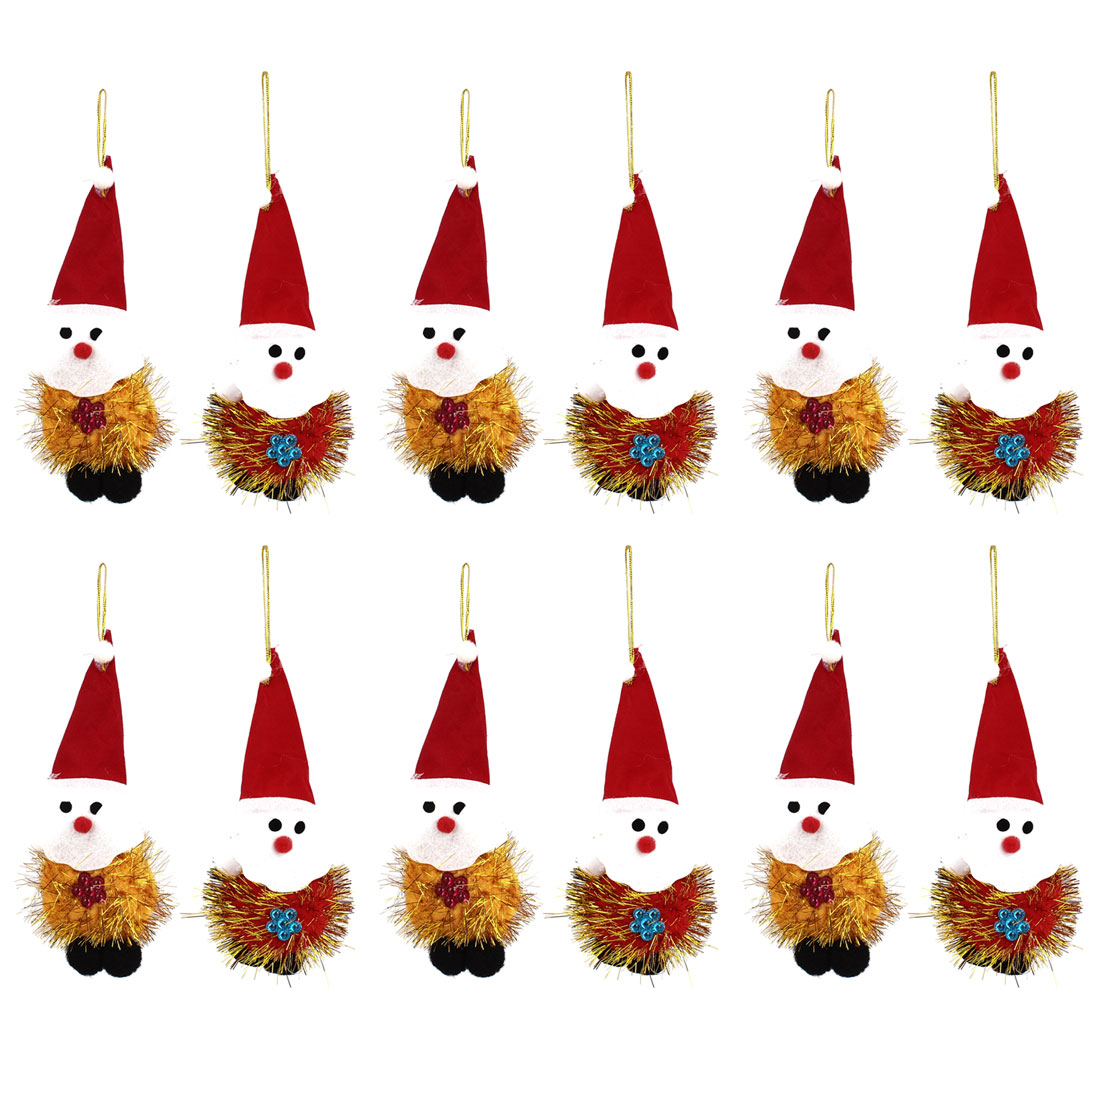 12PCS Red Long Pointed Cap Accent Xmas Santa Claus Pendant for Christmas Tree Dangling Decor